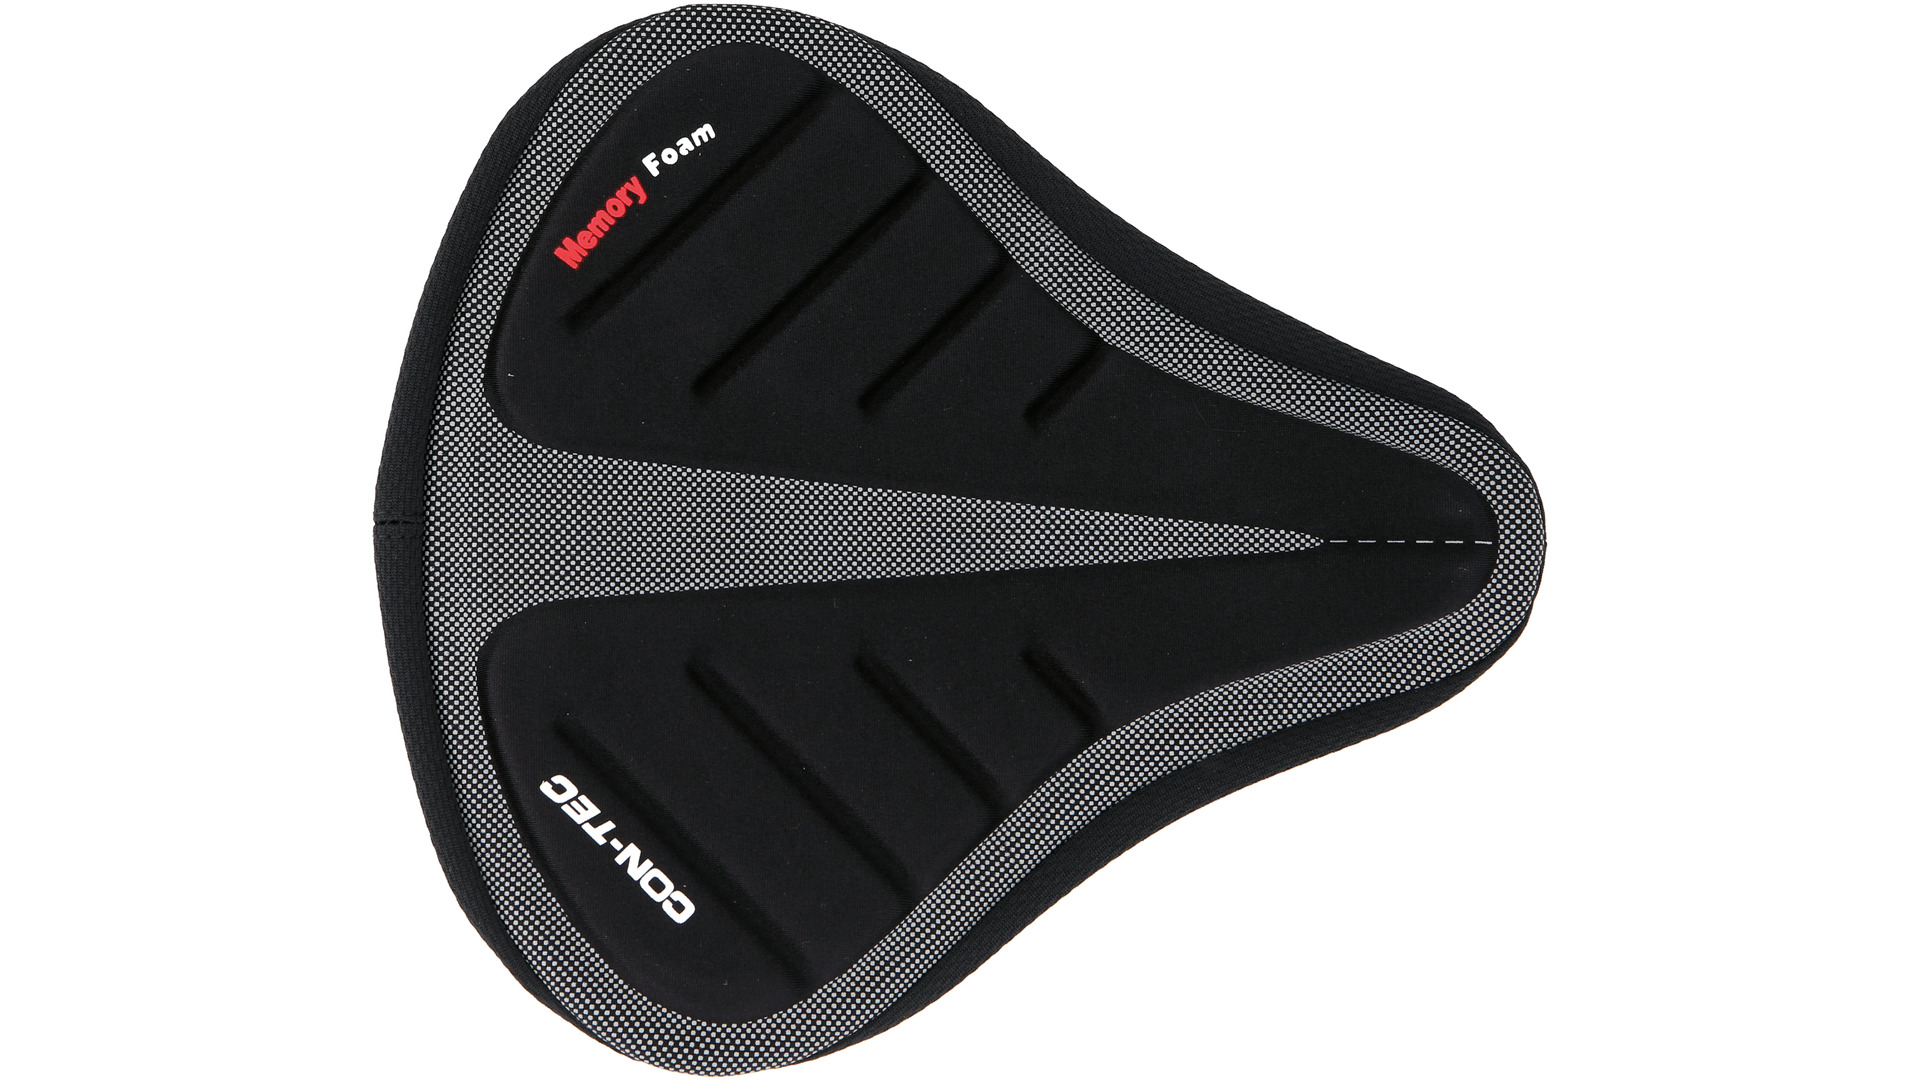 Contec Zadelovertrek Top Seat Foam tbv. Tourzadel  Zw./Grijs